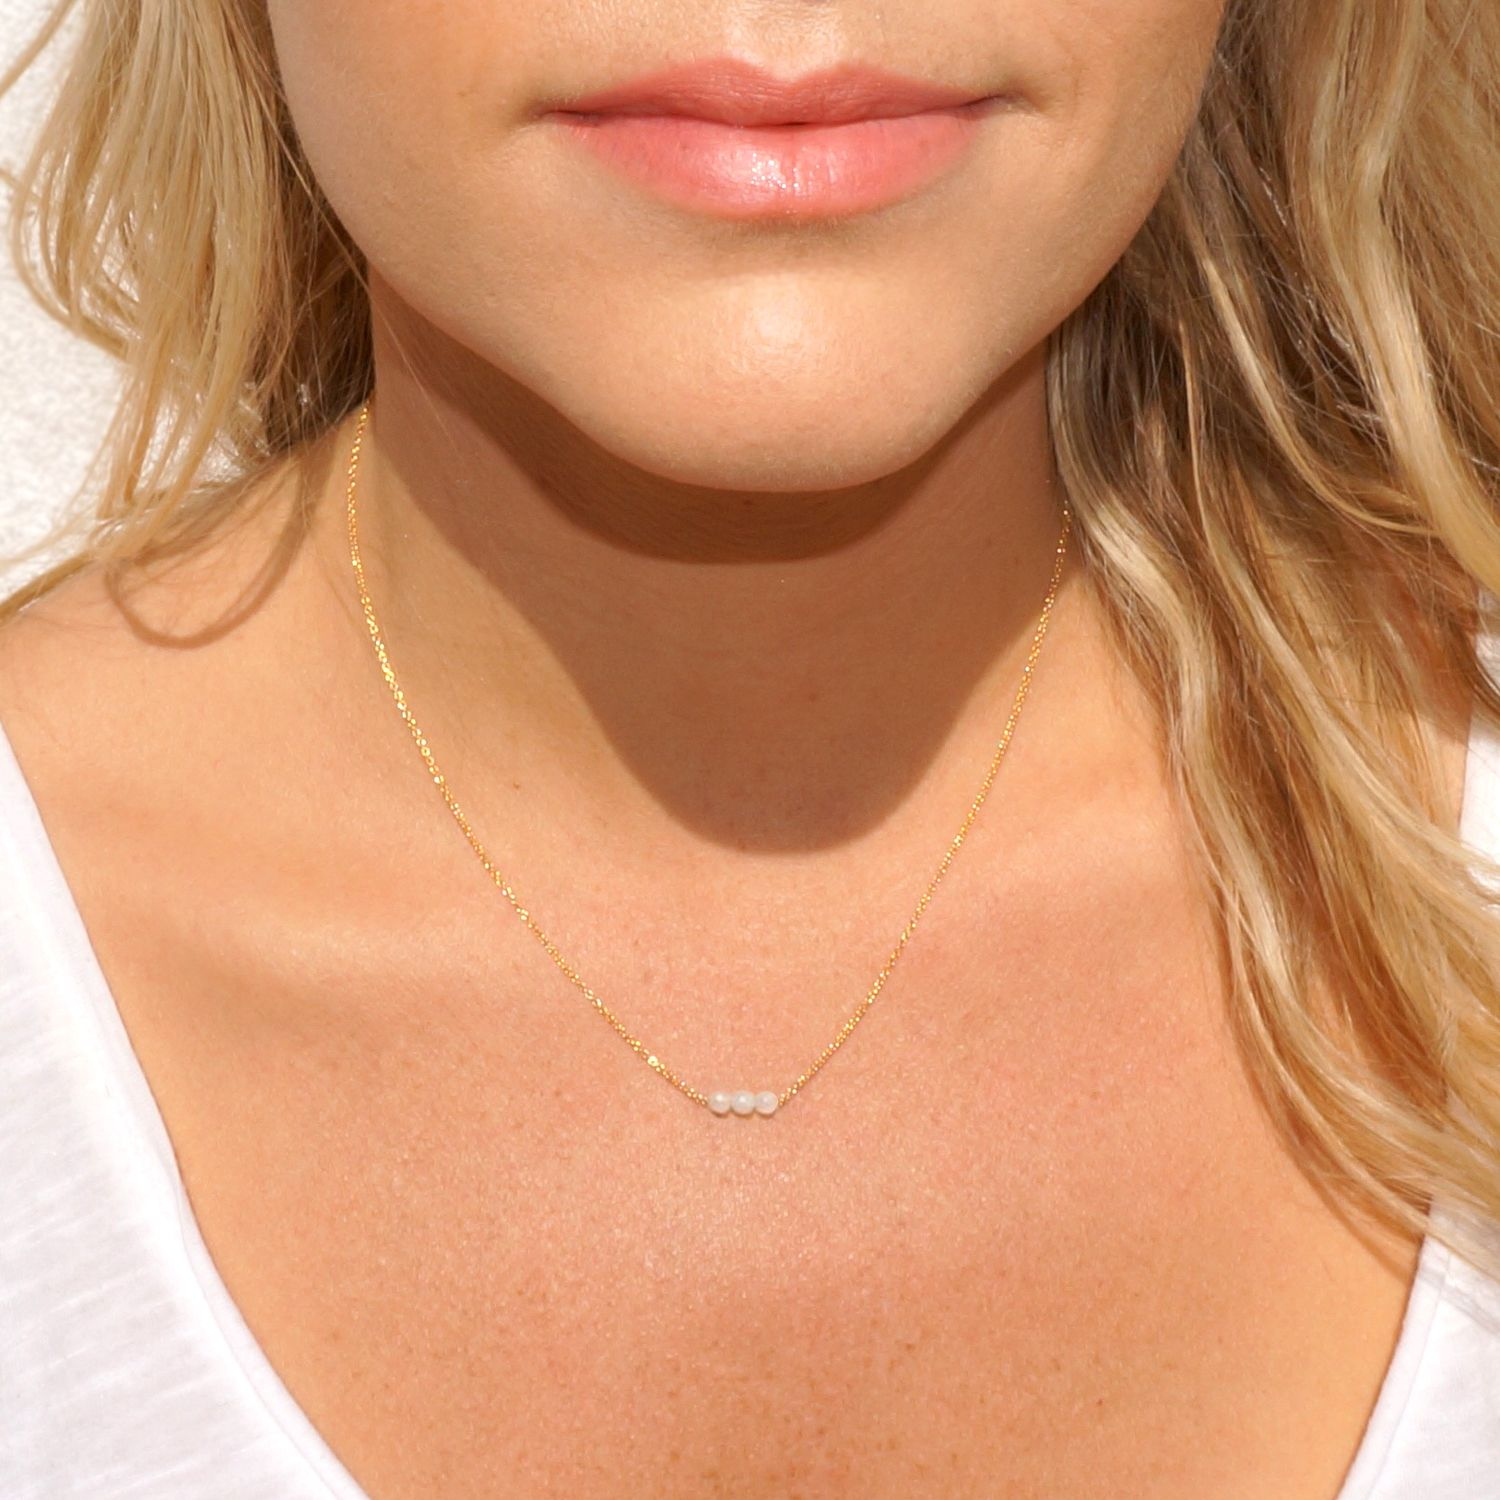 RENEW | moonstone | New Beginnings + Intuition + Calm | #jewelry #necklace #crystals #losangeles #california #madeinusa